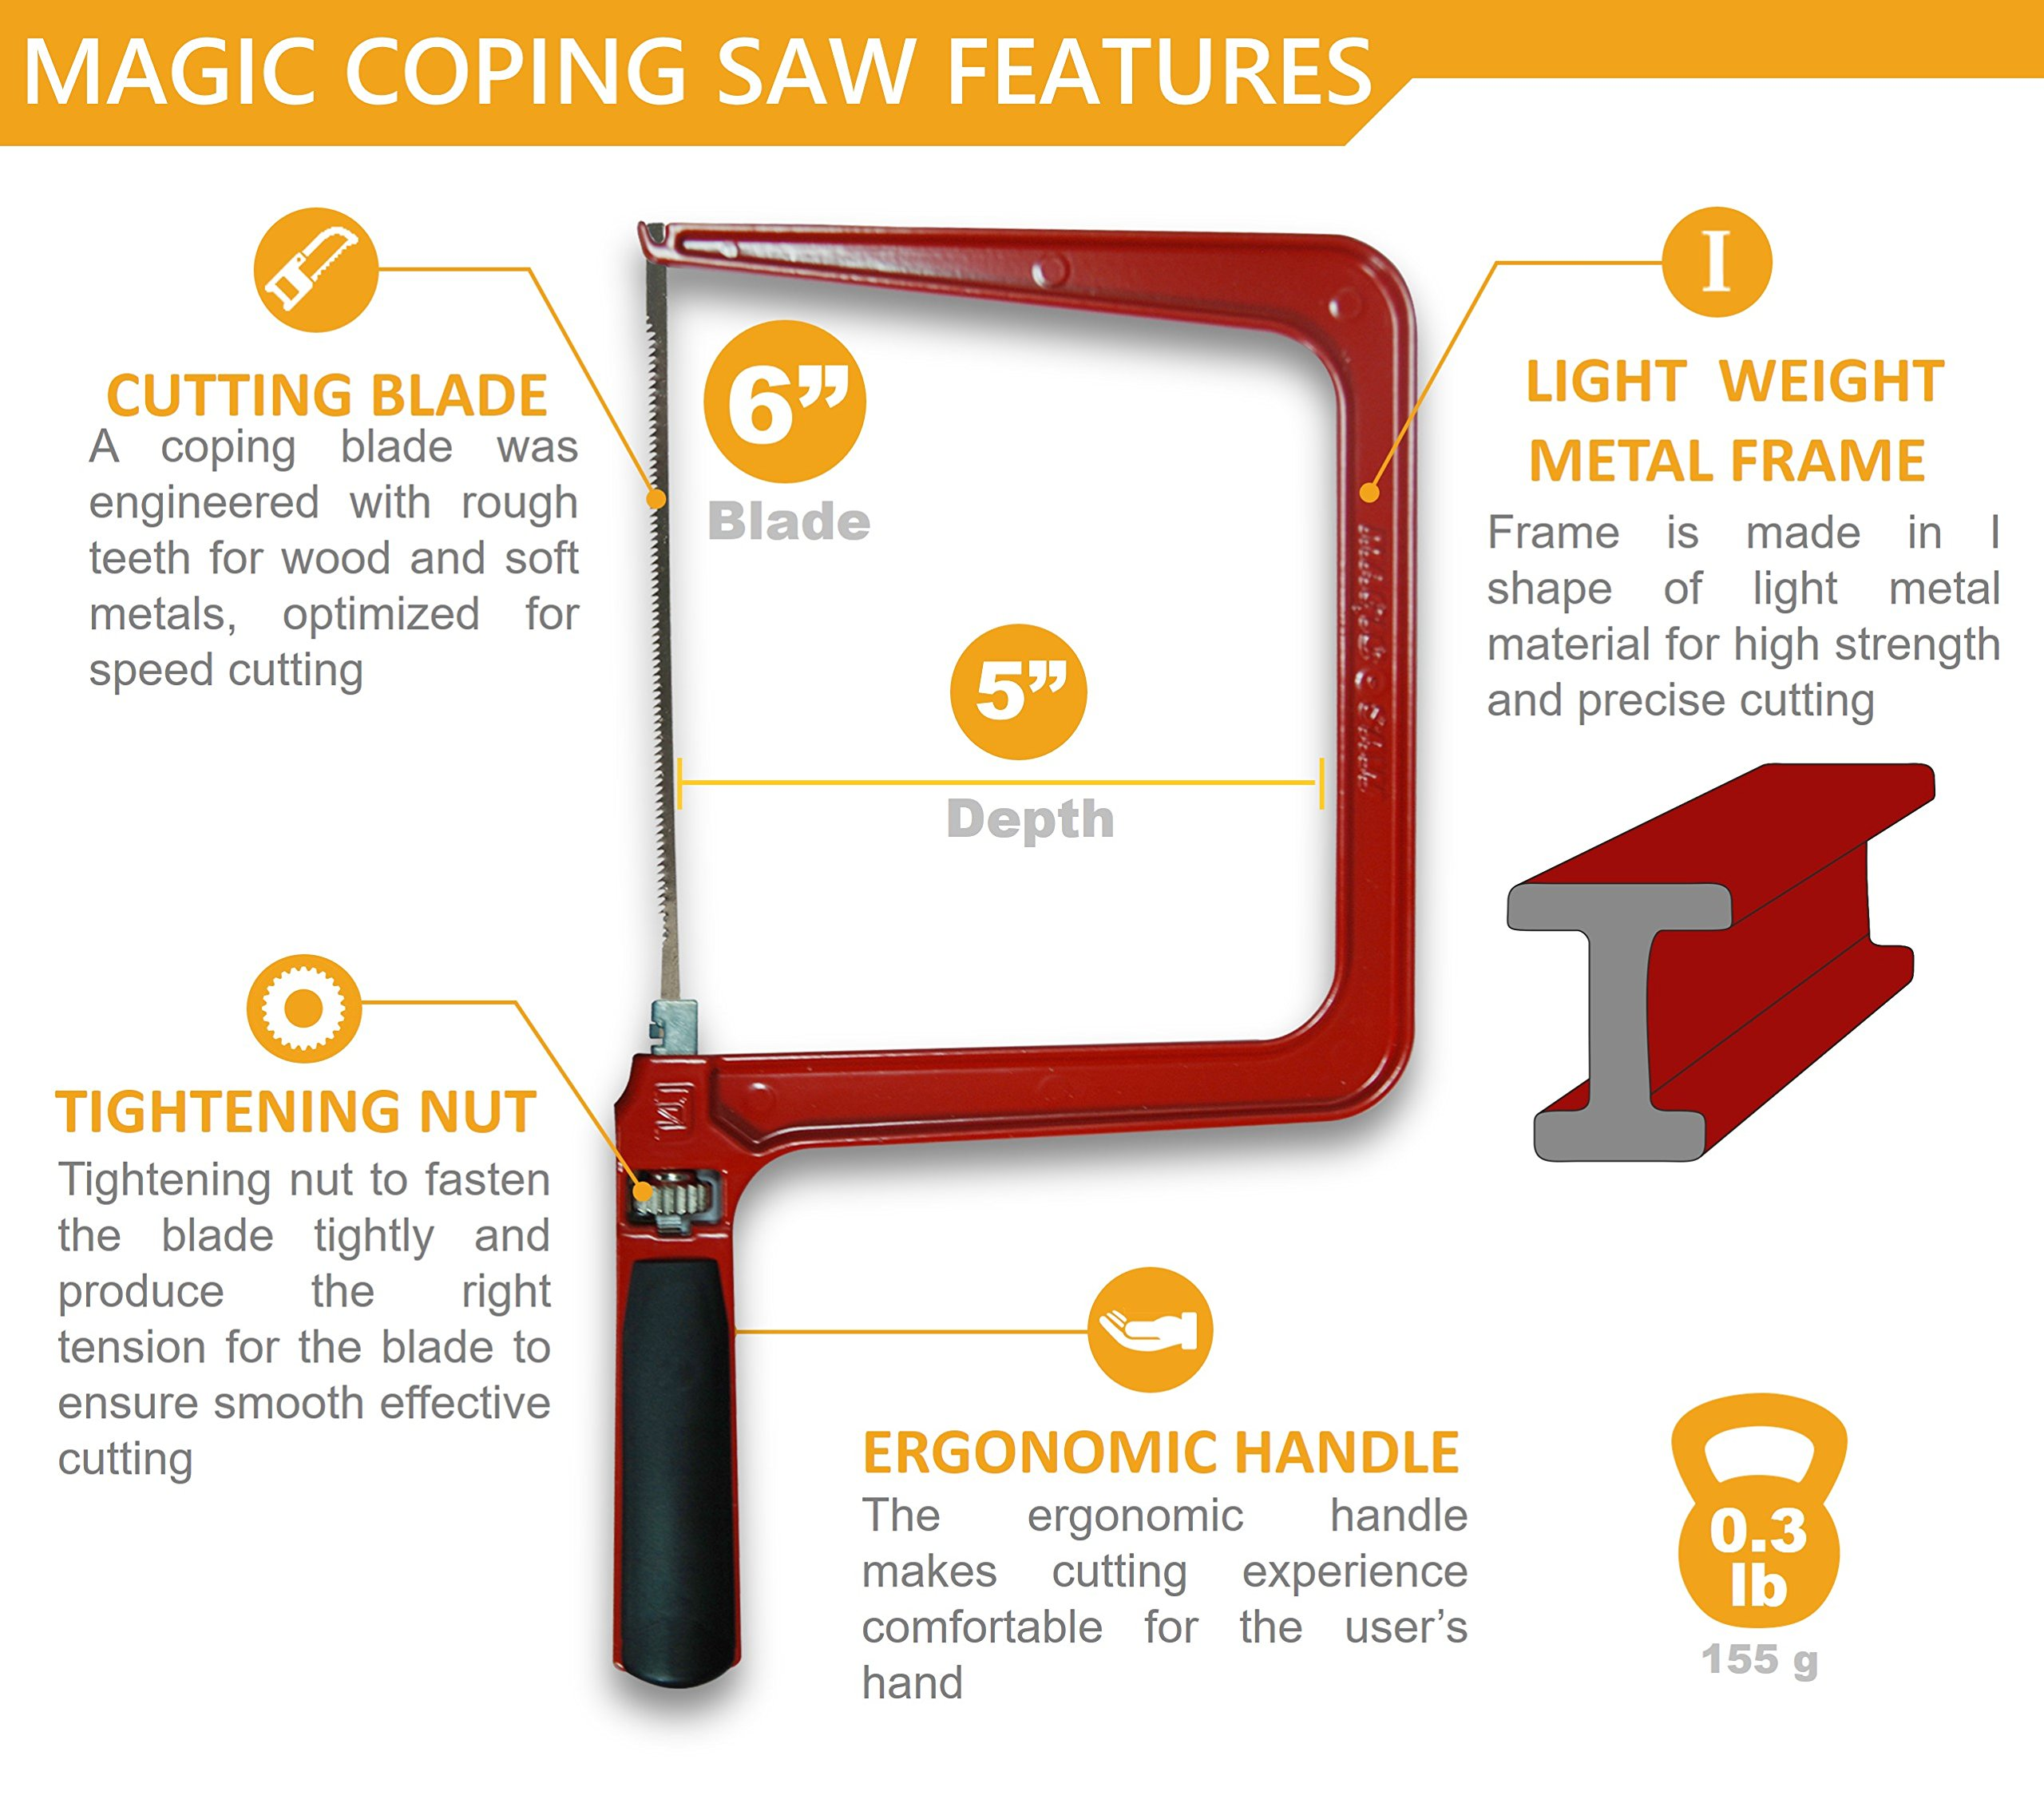 Original Magic Coping Saw with 6 inch High Carbon Steel Pins Blades, a Heavy Duty H shape Metal Frame Works as Fret Saw, Hacksaw, and Pruning Saw & Suitable to Cut Wood, Plastic, PVC, Aluminum, Nails by Amazing Tools (Image #2)